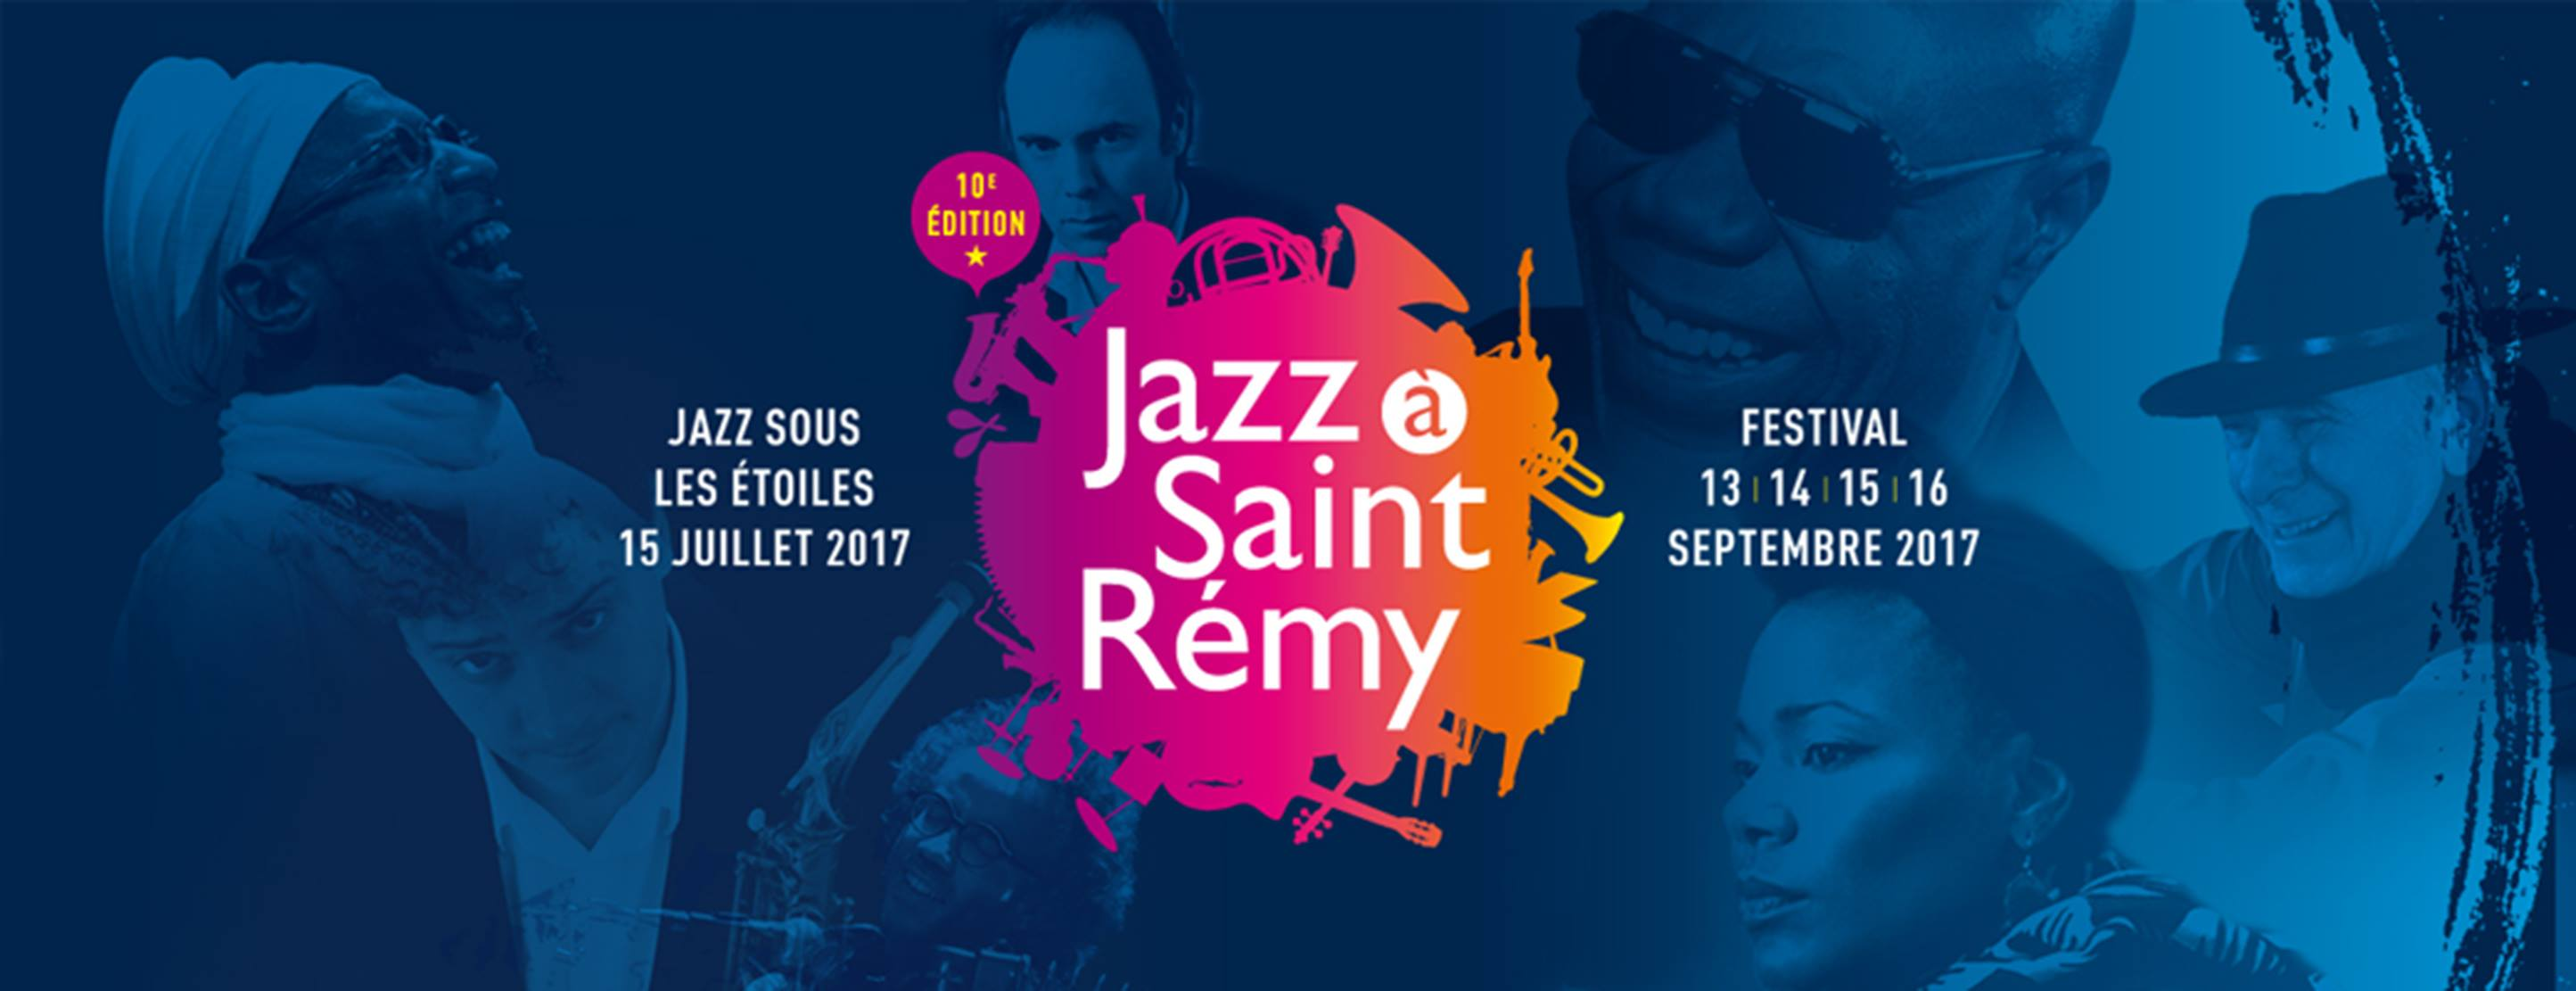 Jazz à Saint Rémy